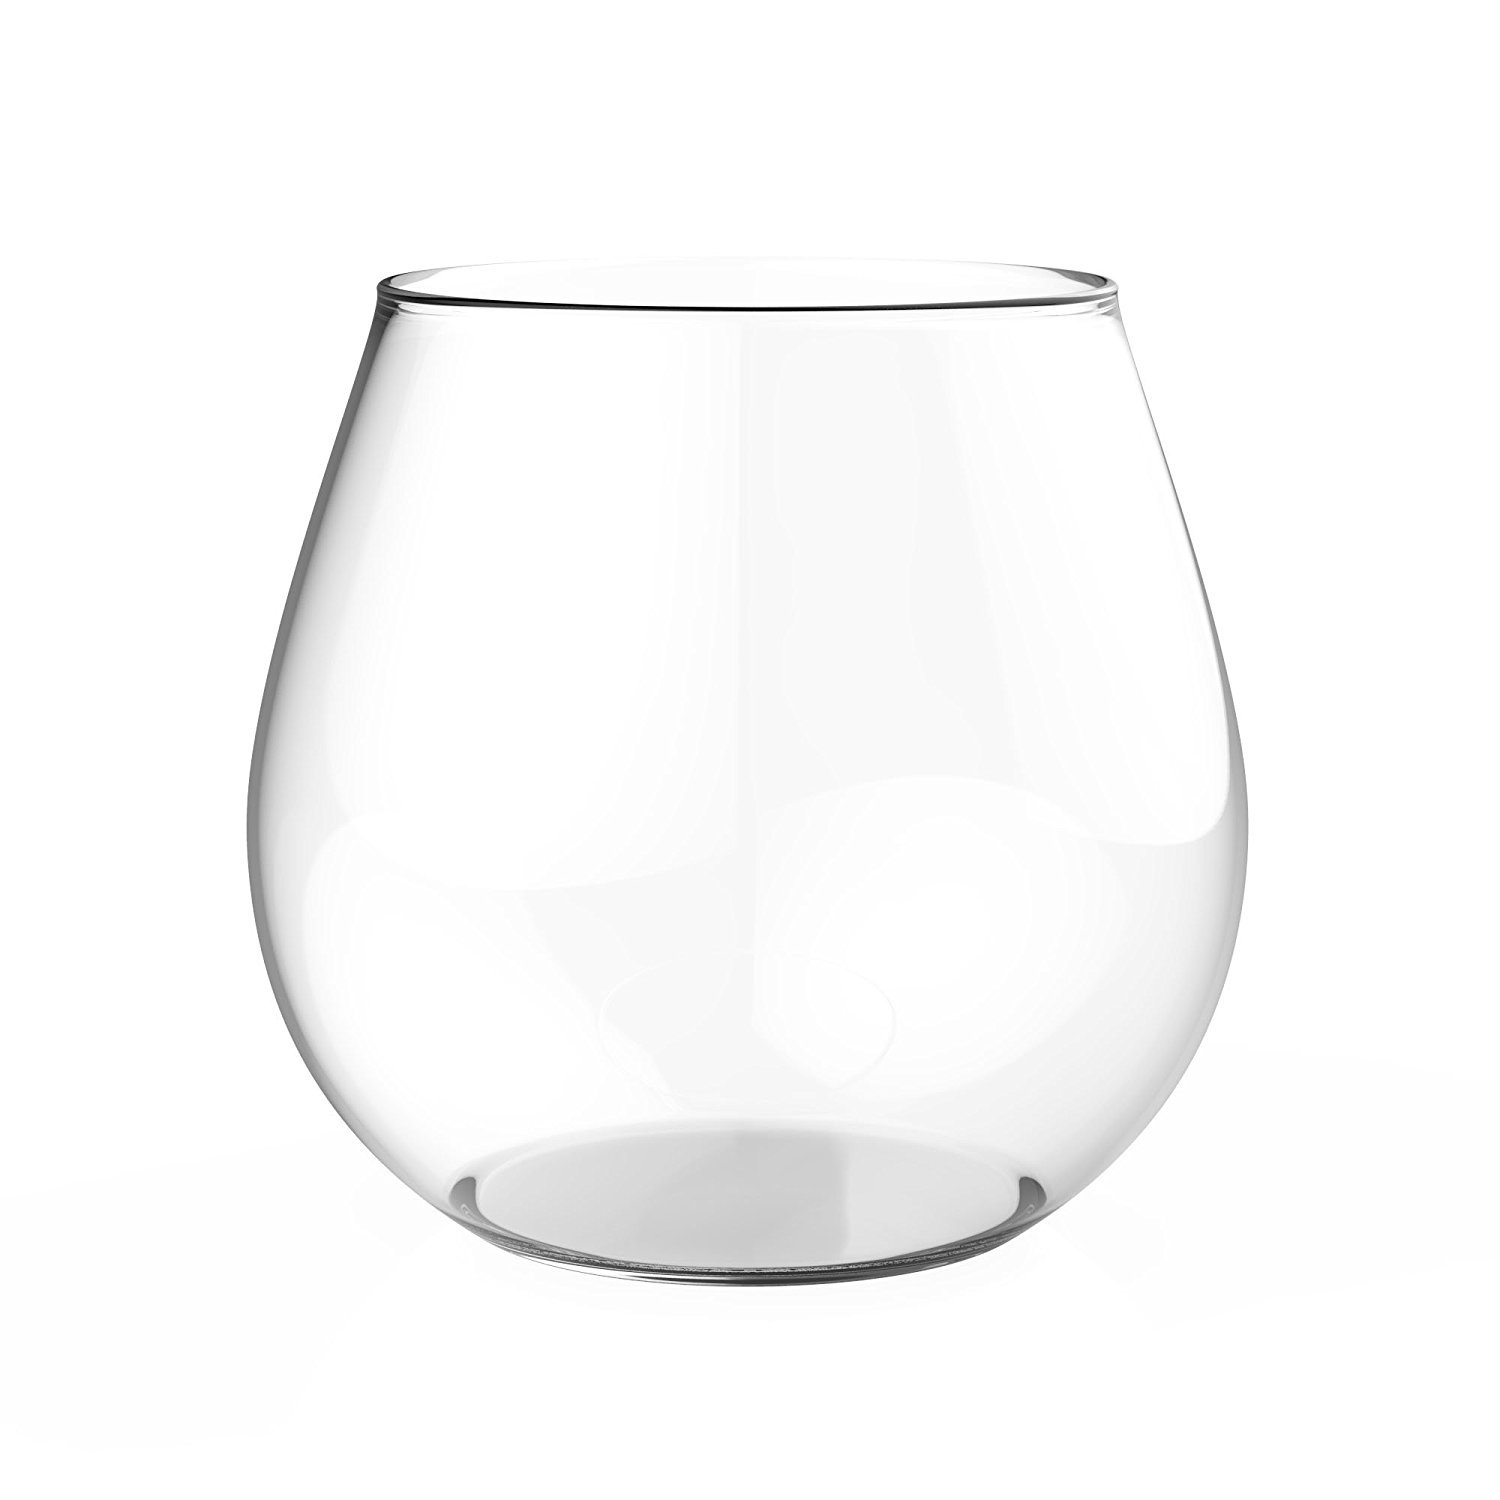 Zeppoli Wine Glass 4-Piece Set Stemless Clear Durable Glass